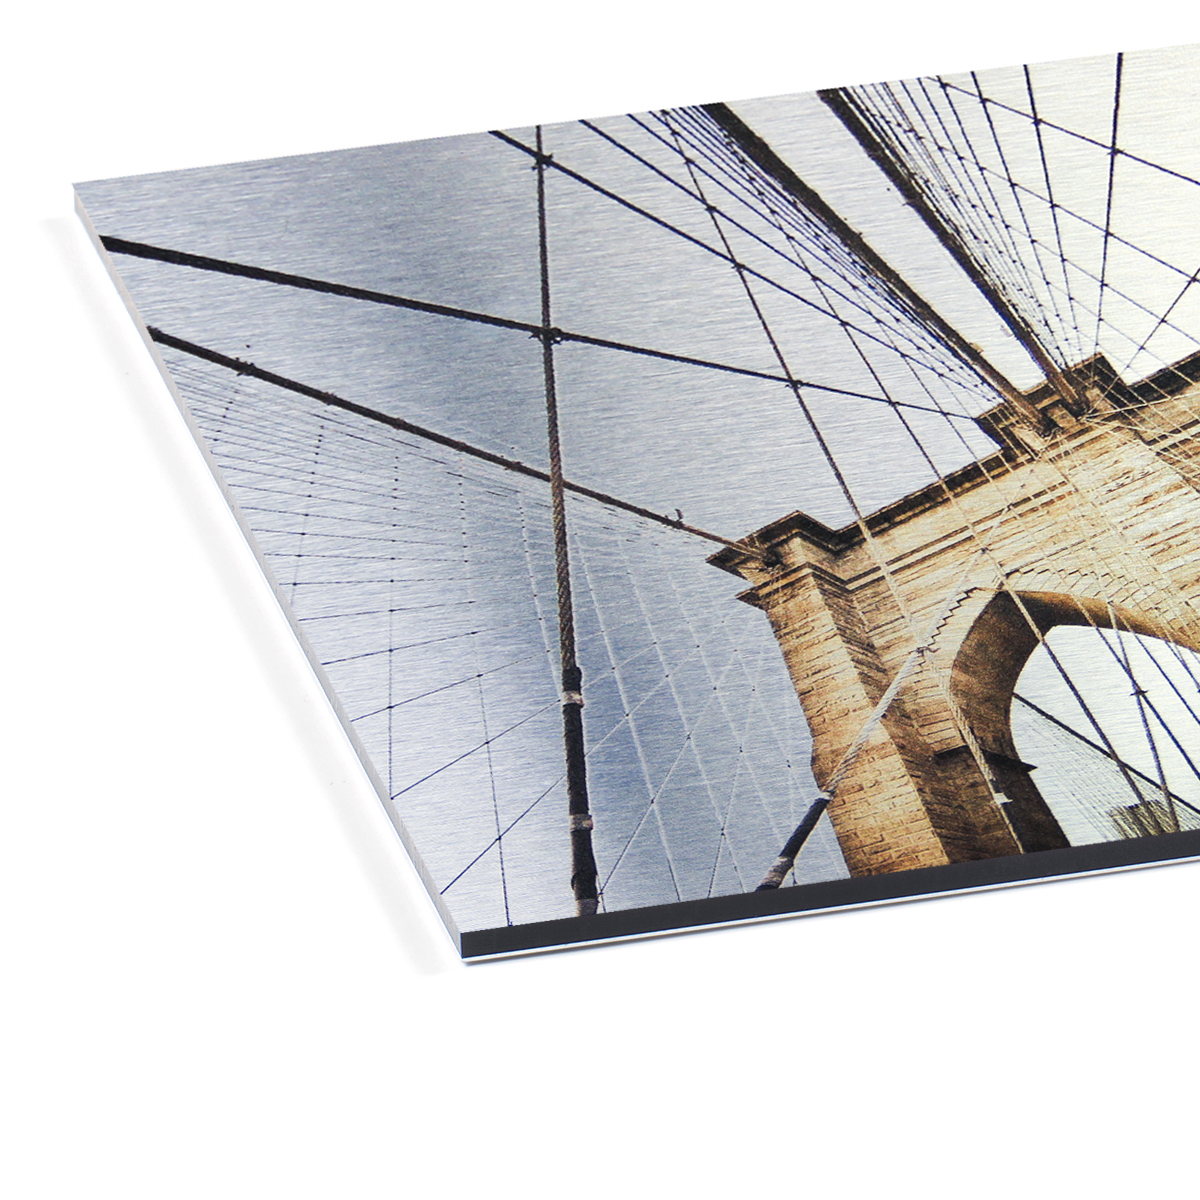 Alu Dibond Oder Acryl Dibond Printing Your Wall Art Onto Metal Artisanhd